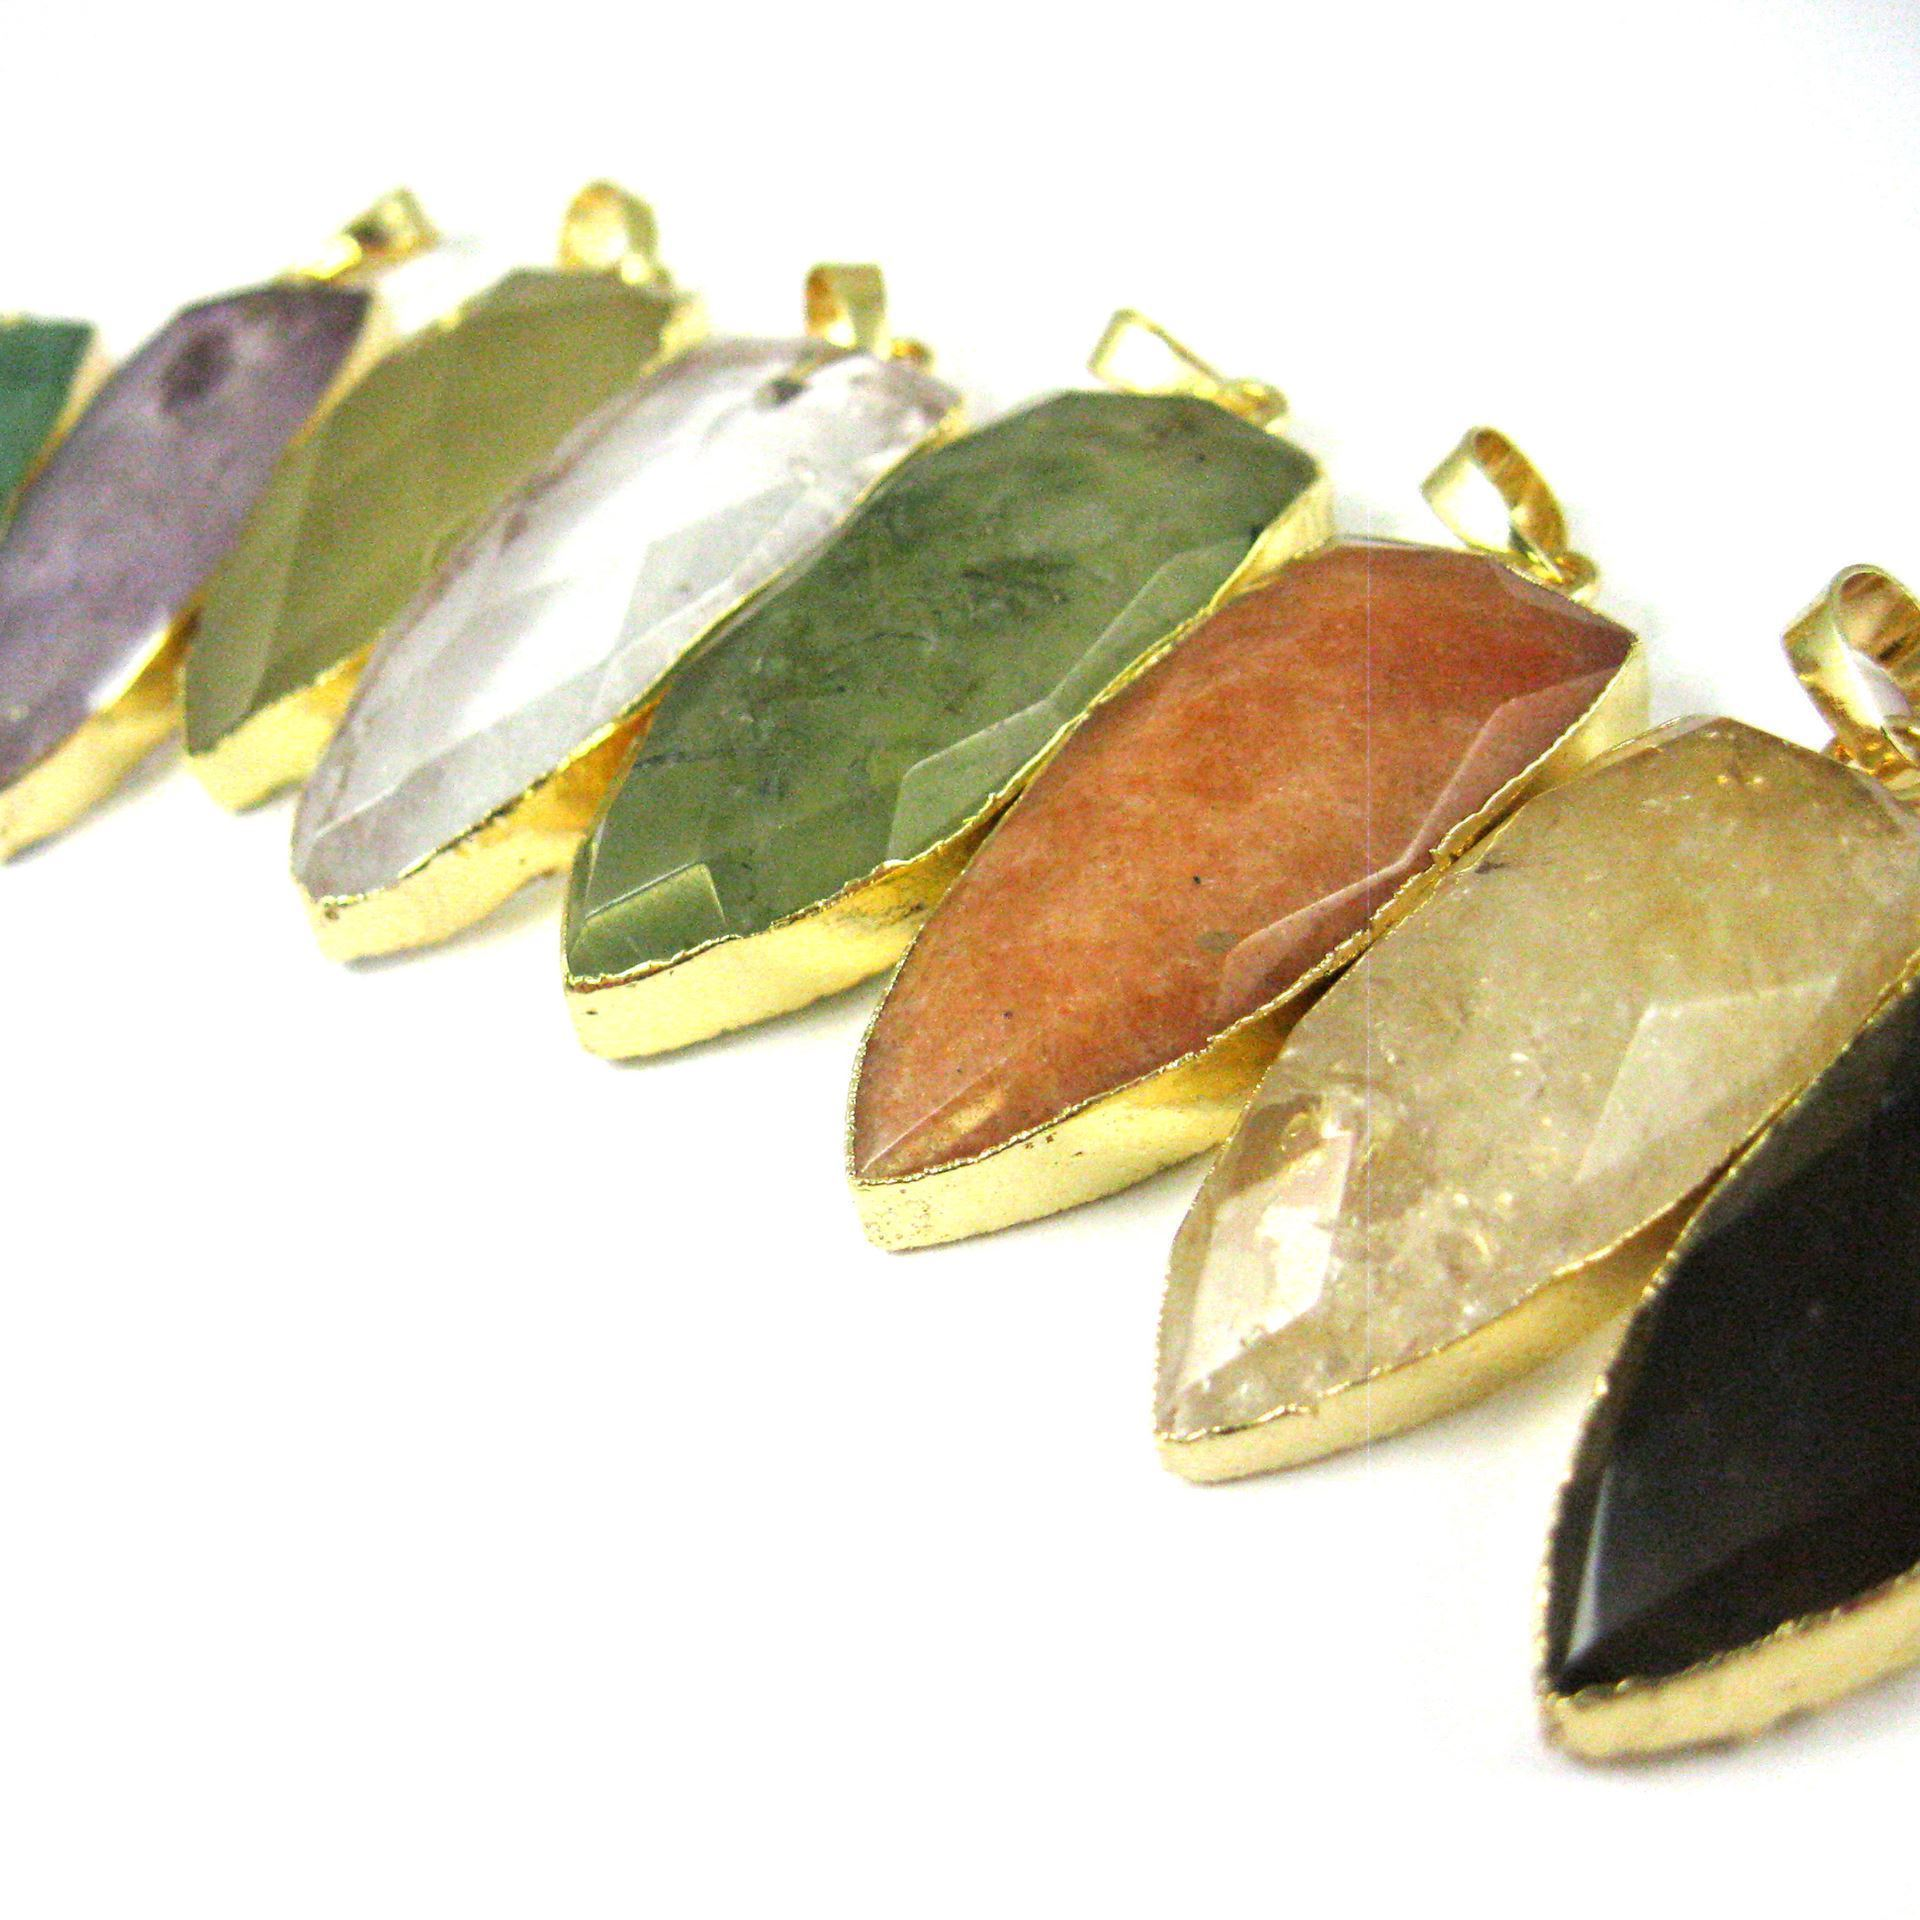 Gold Plated Faceted Arrowhead Pendant-Arrowhead charm-Natural Gemstone Spike Pendant - Tiger Eye - 40mm